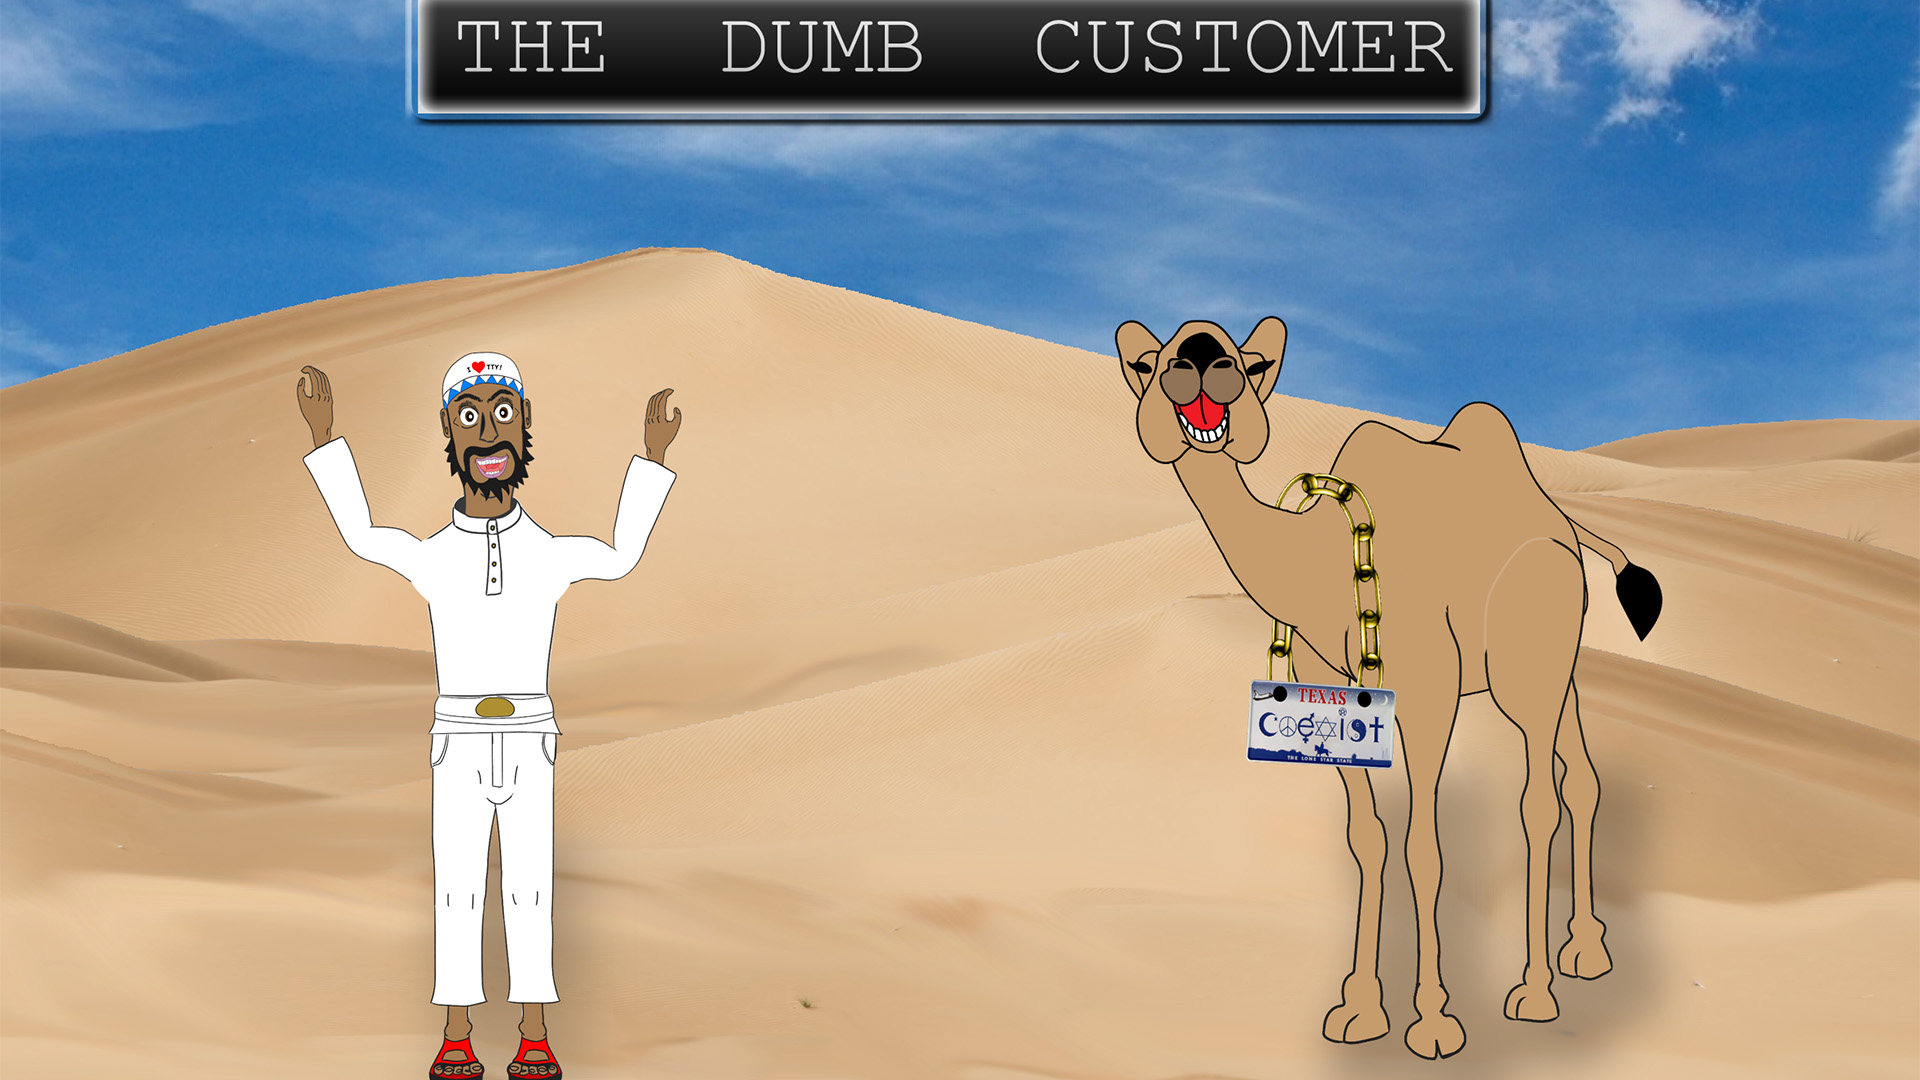 The Dumb Customer - Website Background Image - 1920x1080 - cropped